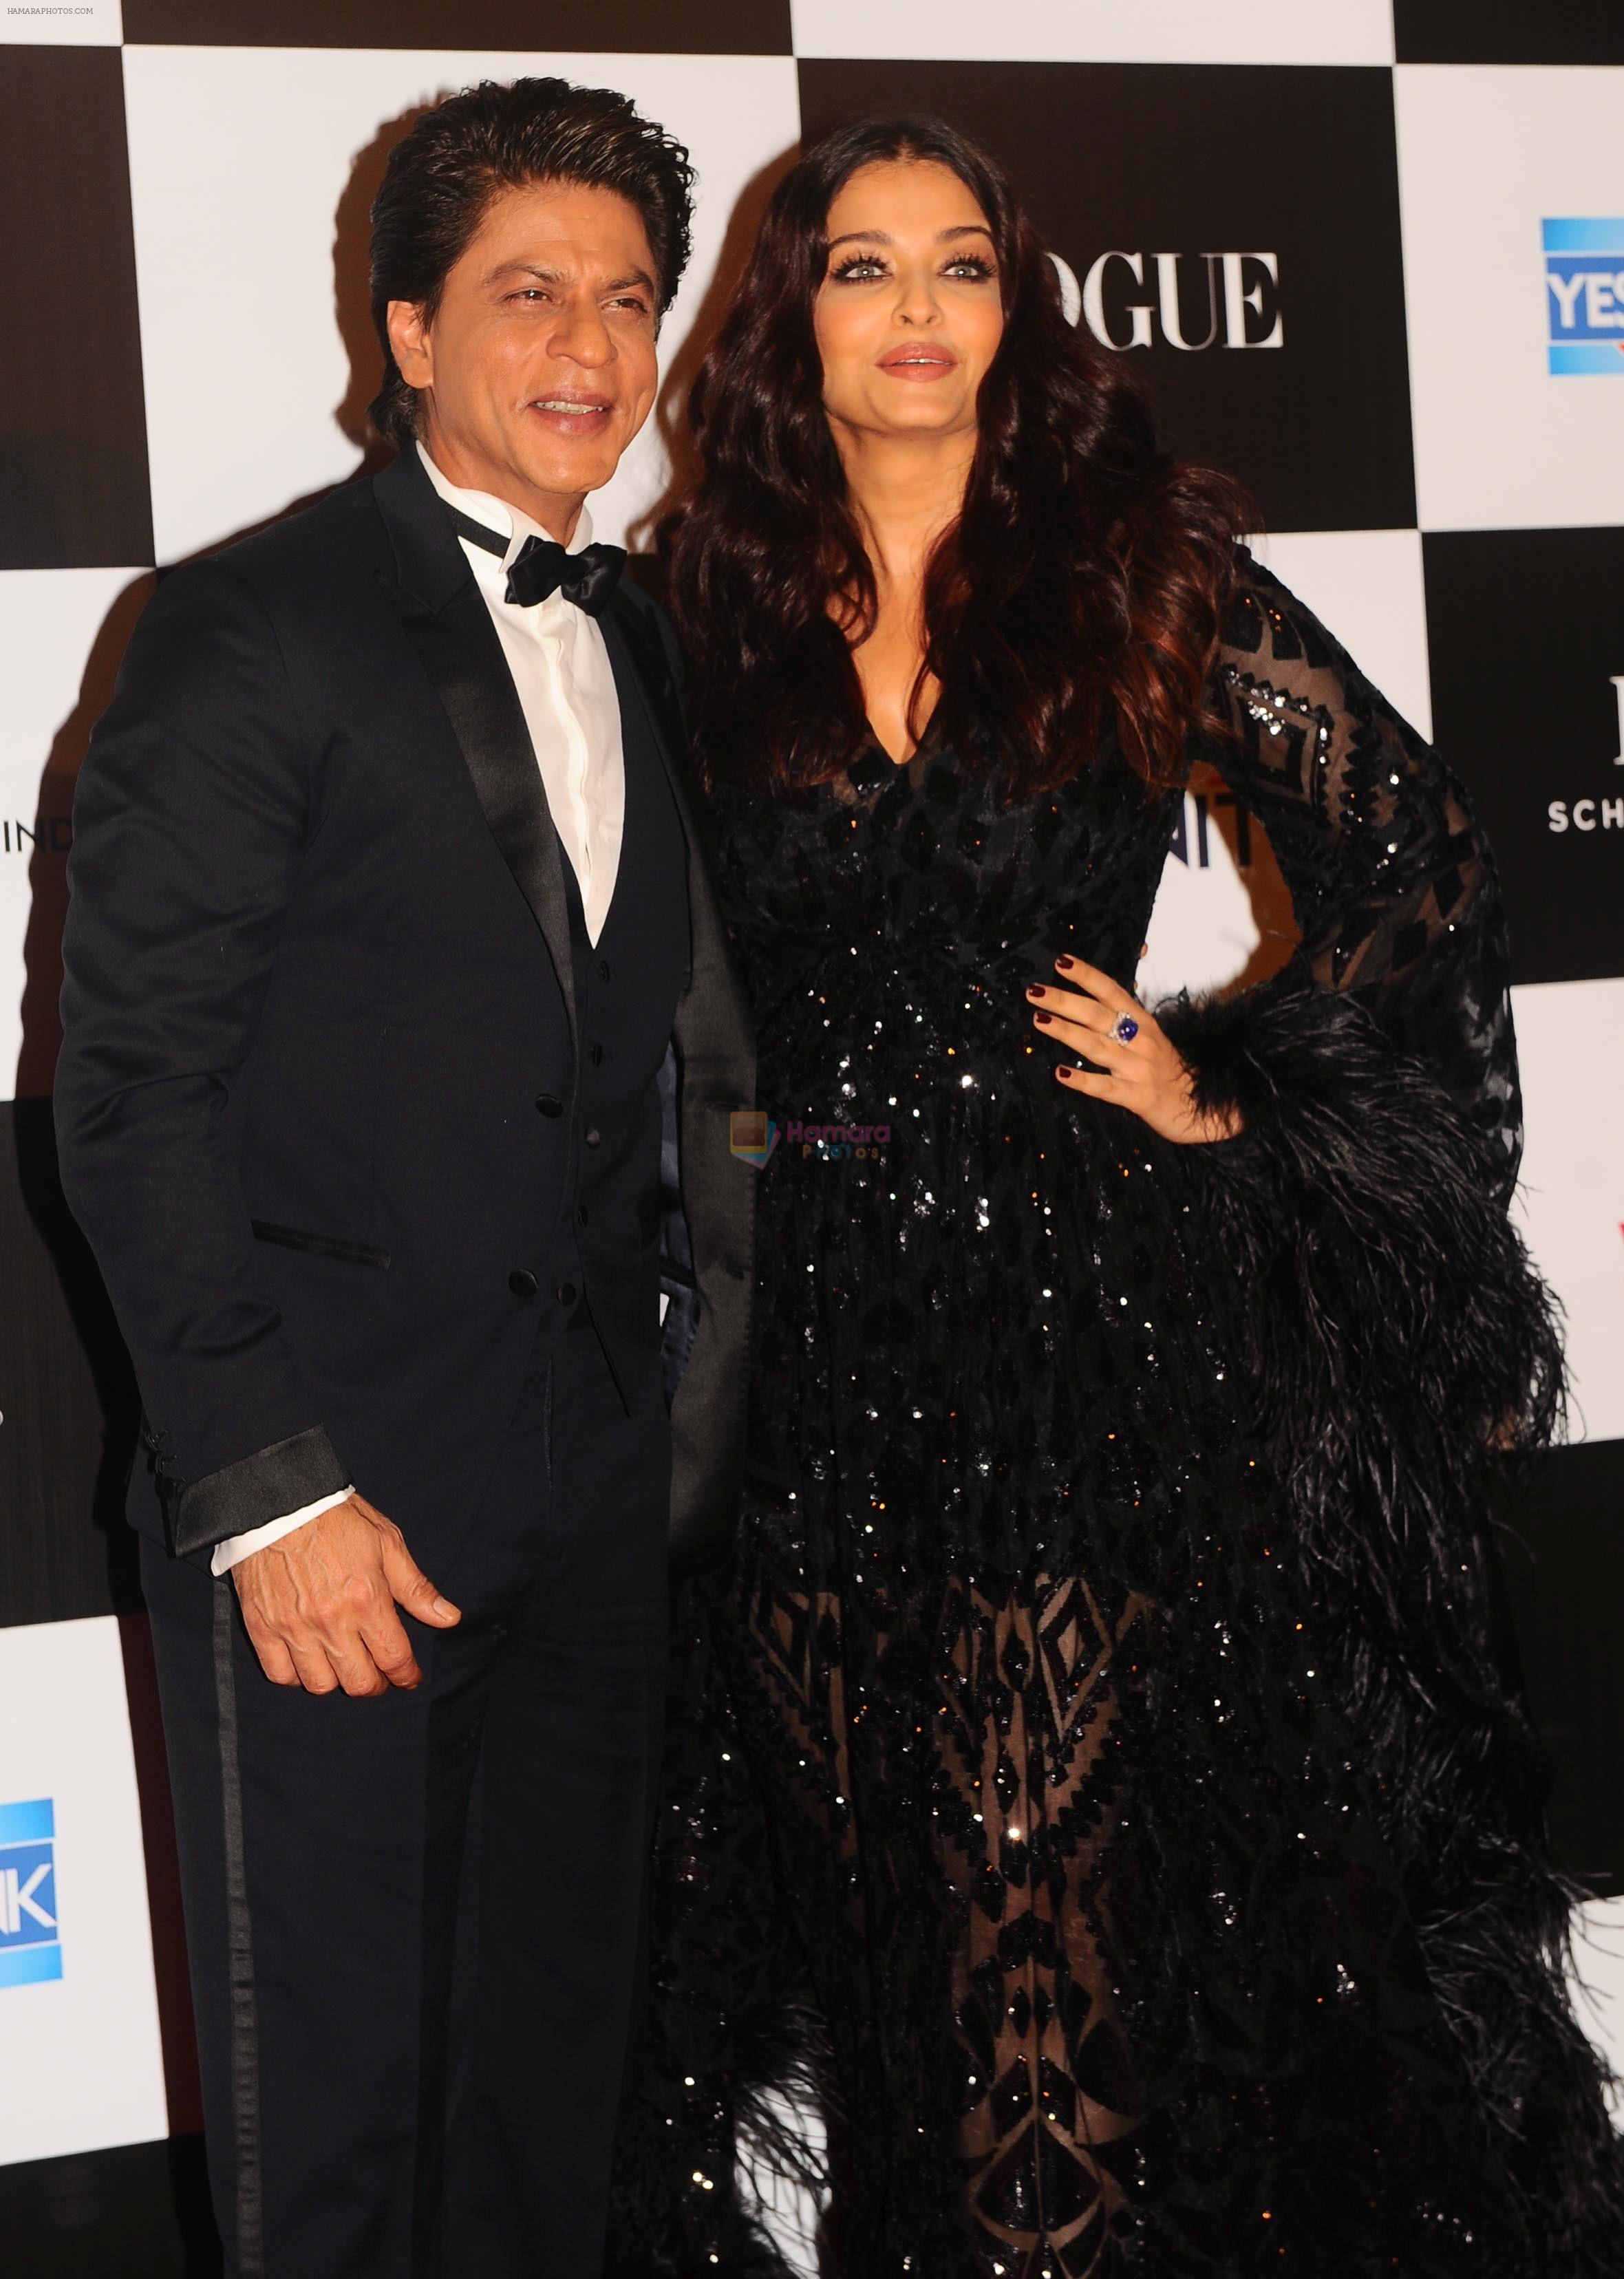 Aishwarya Rai Bachchan, Shah Rukh Khan at the Red Carpet Of Vogue Women Of The Year 2017 on 25th Sept 2017